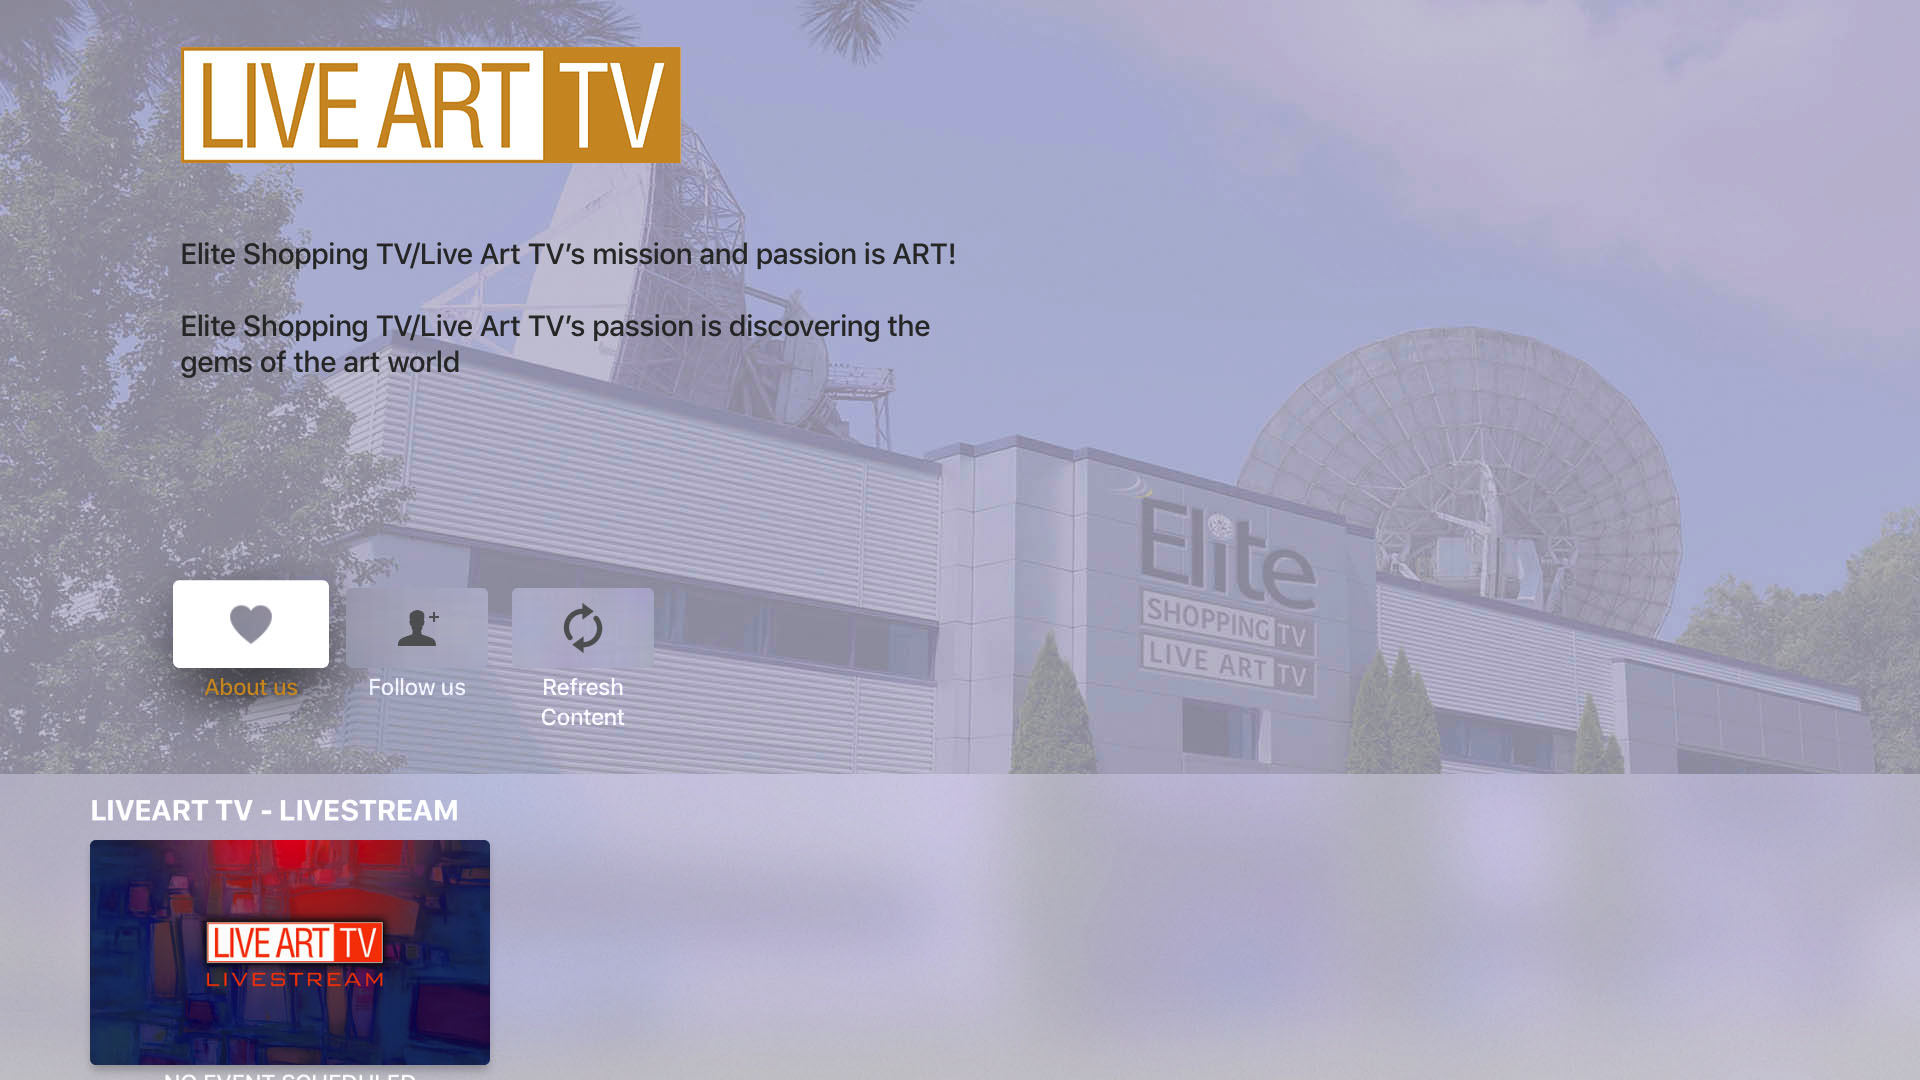 Elite Shopping TV/Live Art TV Screenshot 001